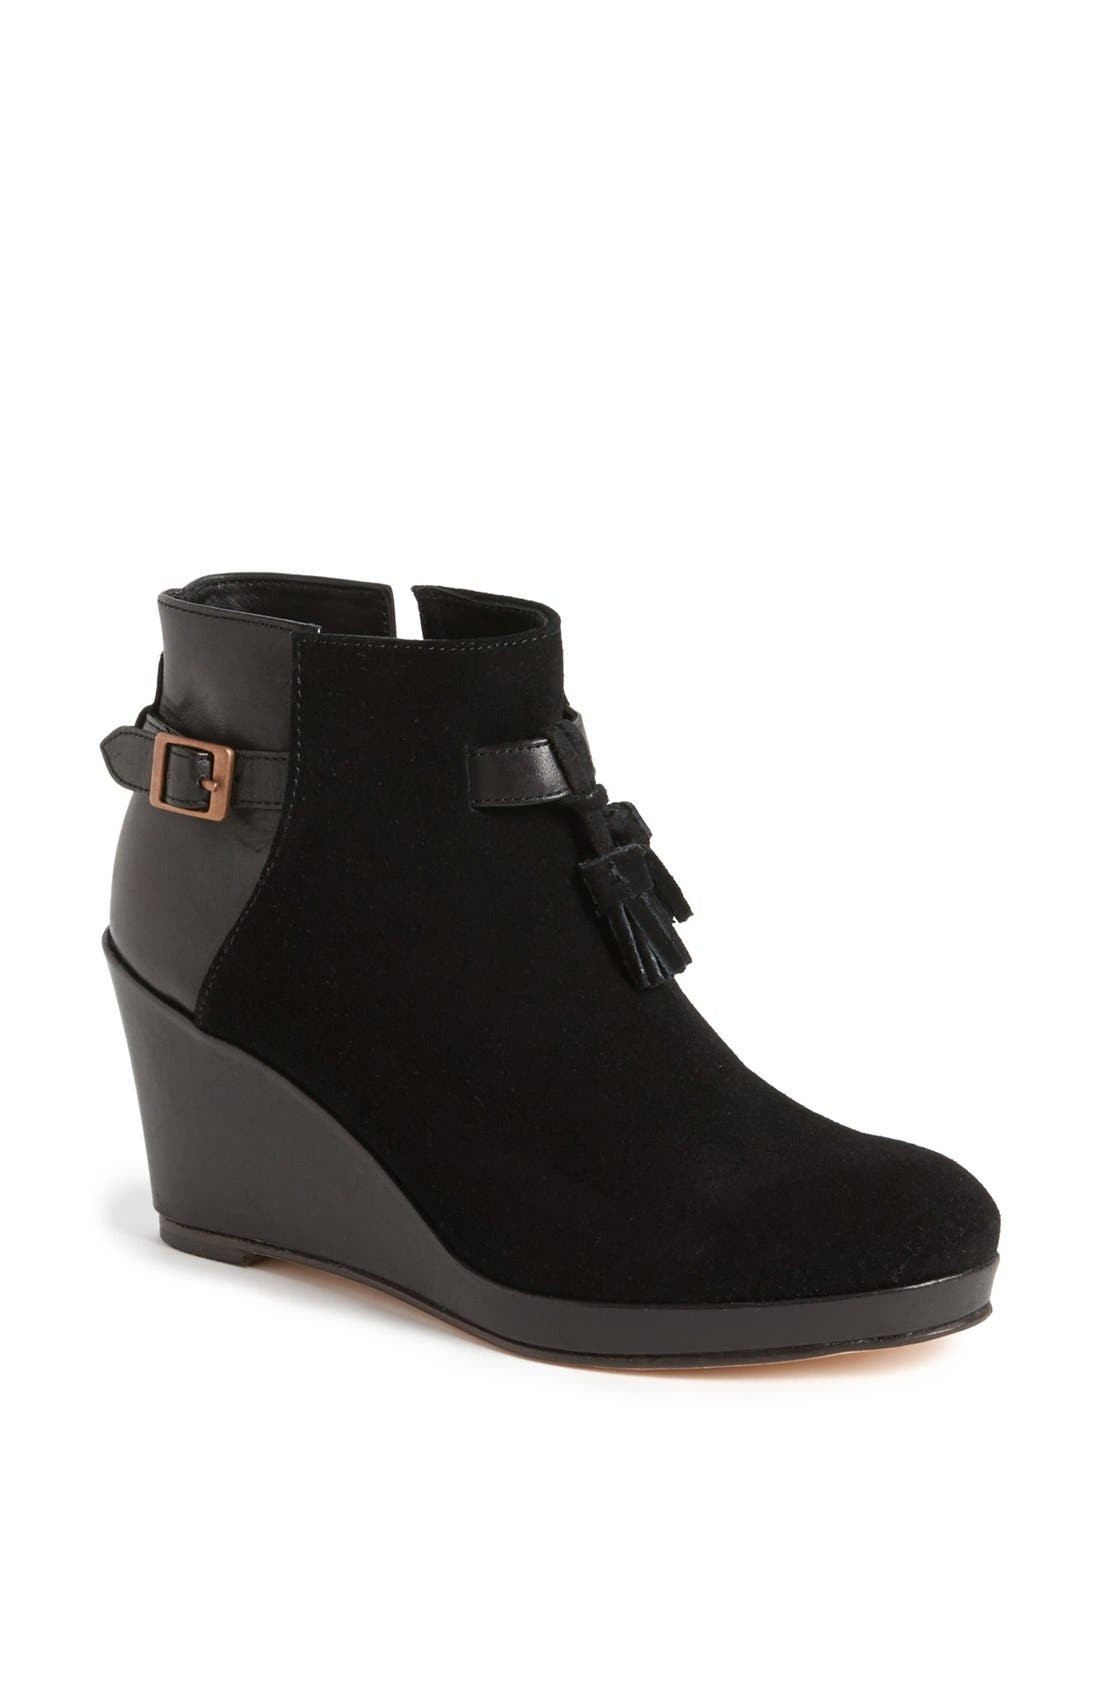 Main Image - Wolverine 1000 Mile by Samantha Pleet 'Socialite' Suede & Leather Wedge Bootie